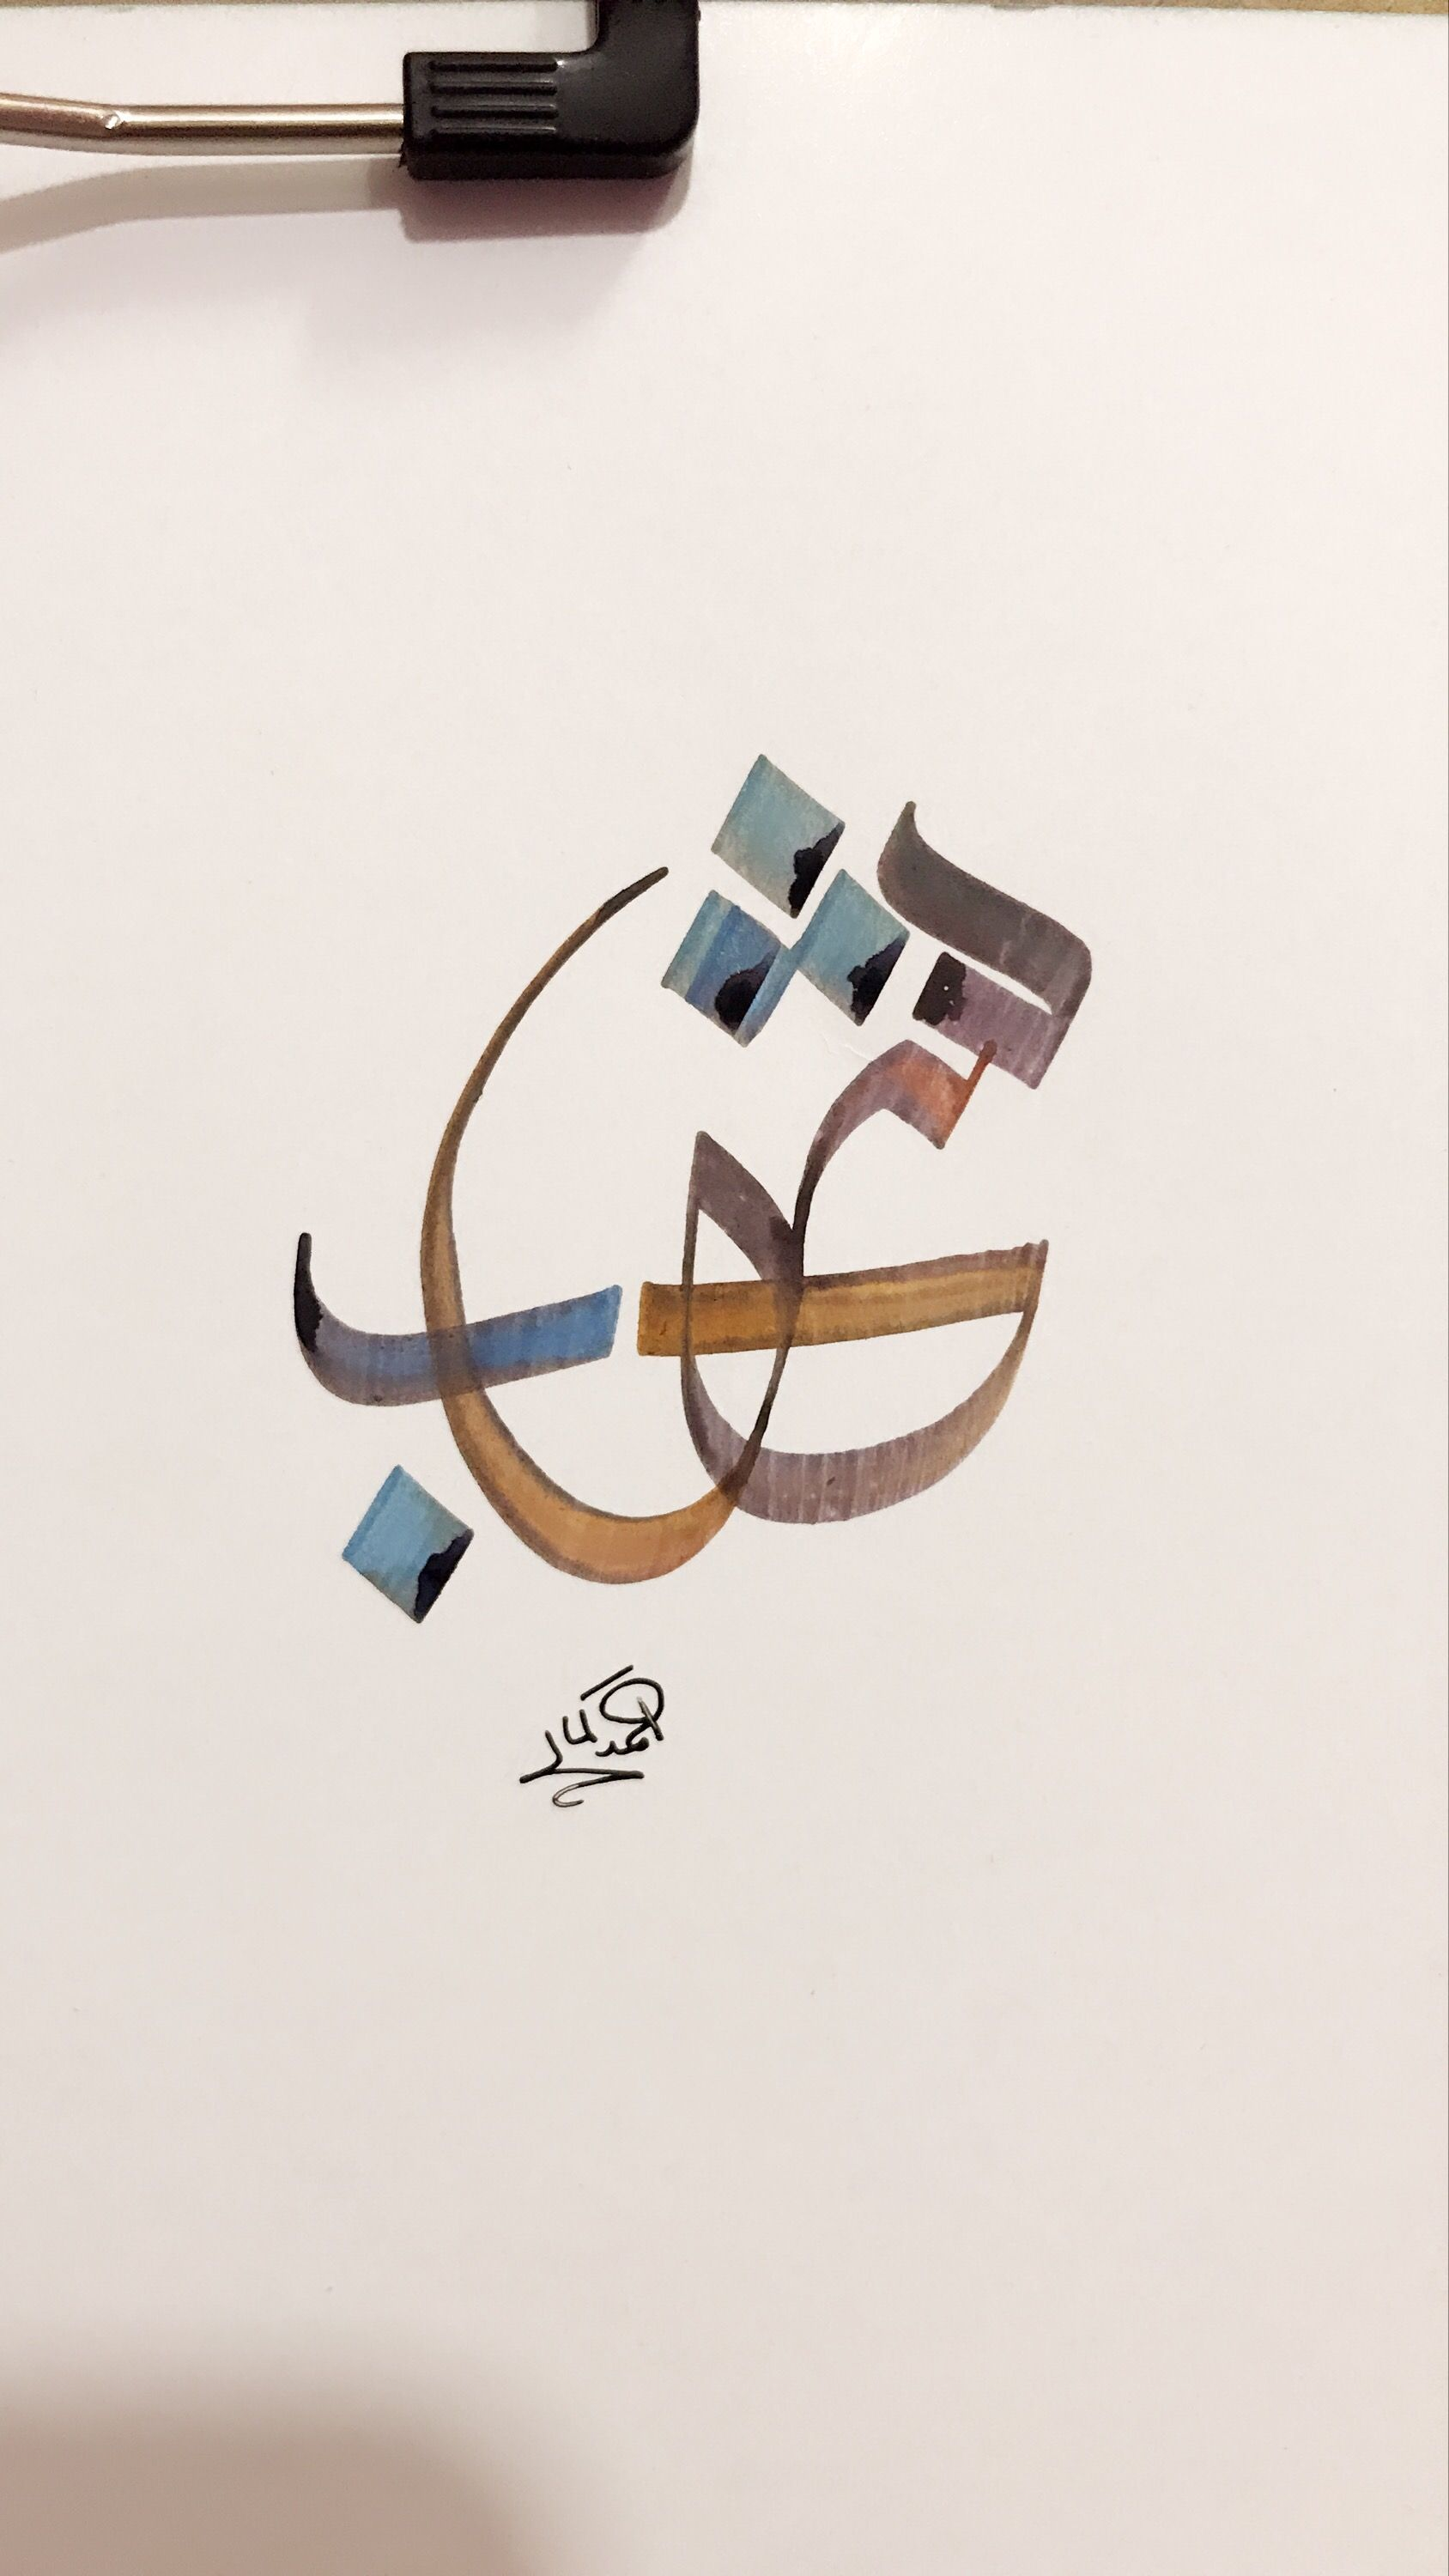 Pin By Ahmed Kamal On Name Typography تايبوجرافي Calligraphy Art Arabic Art Arabic Calligraphy Art